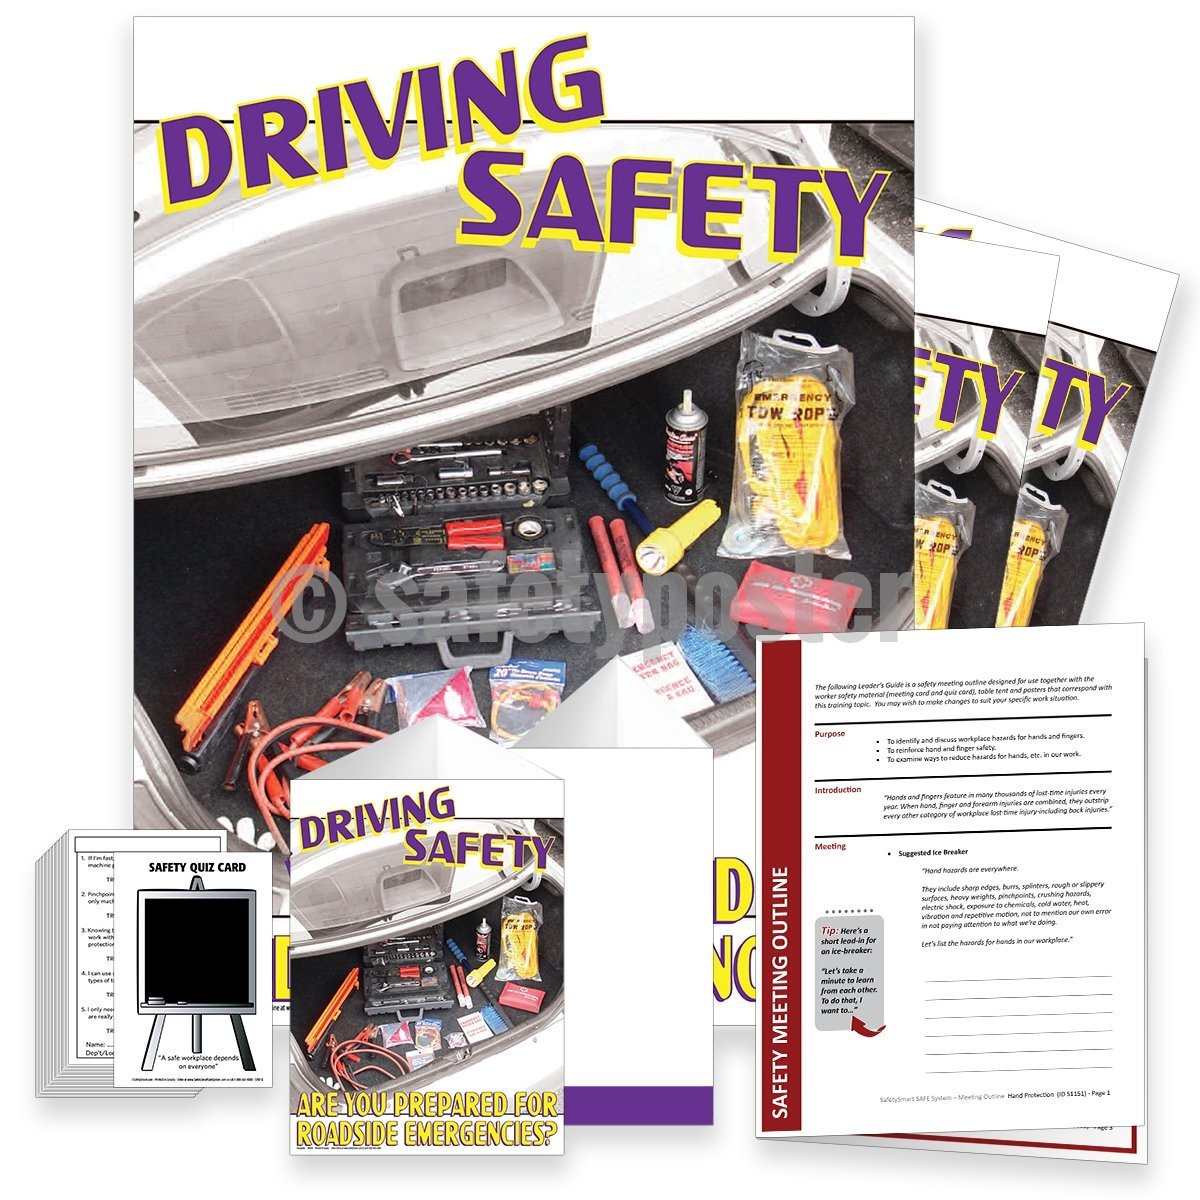 Safety Meeting Kit - Roadside Emergencies Kits